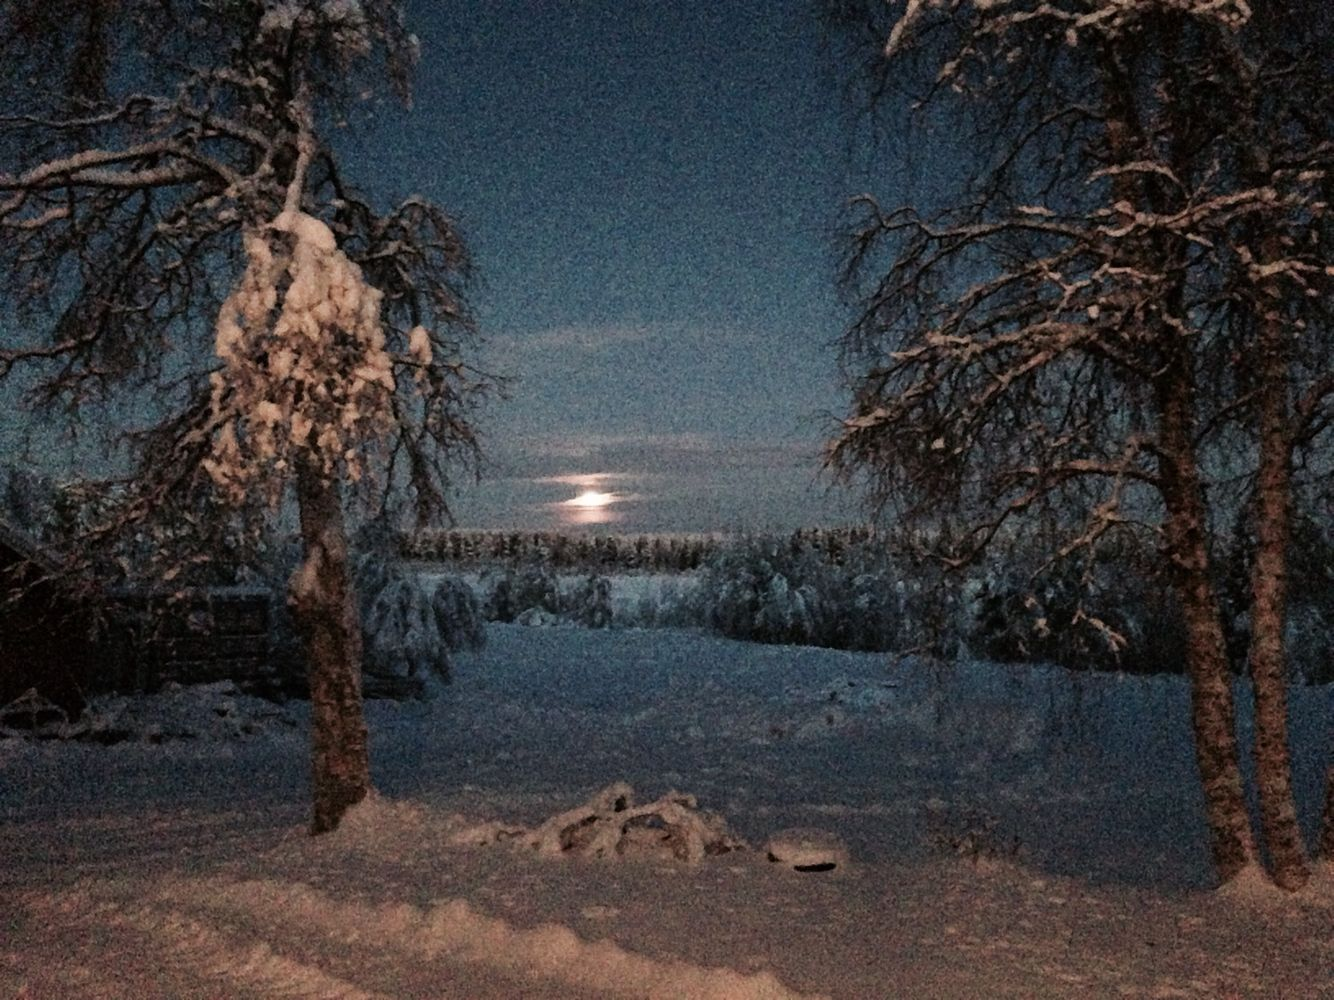 View from my childhood home time of Kaamos